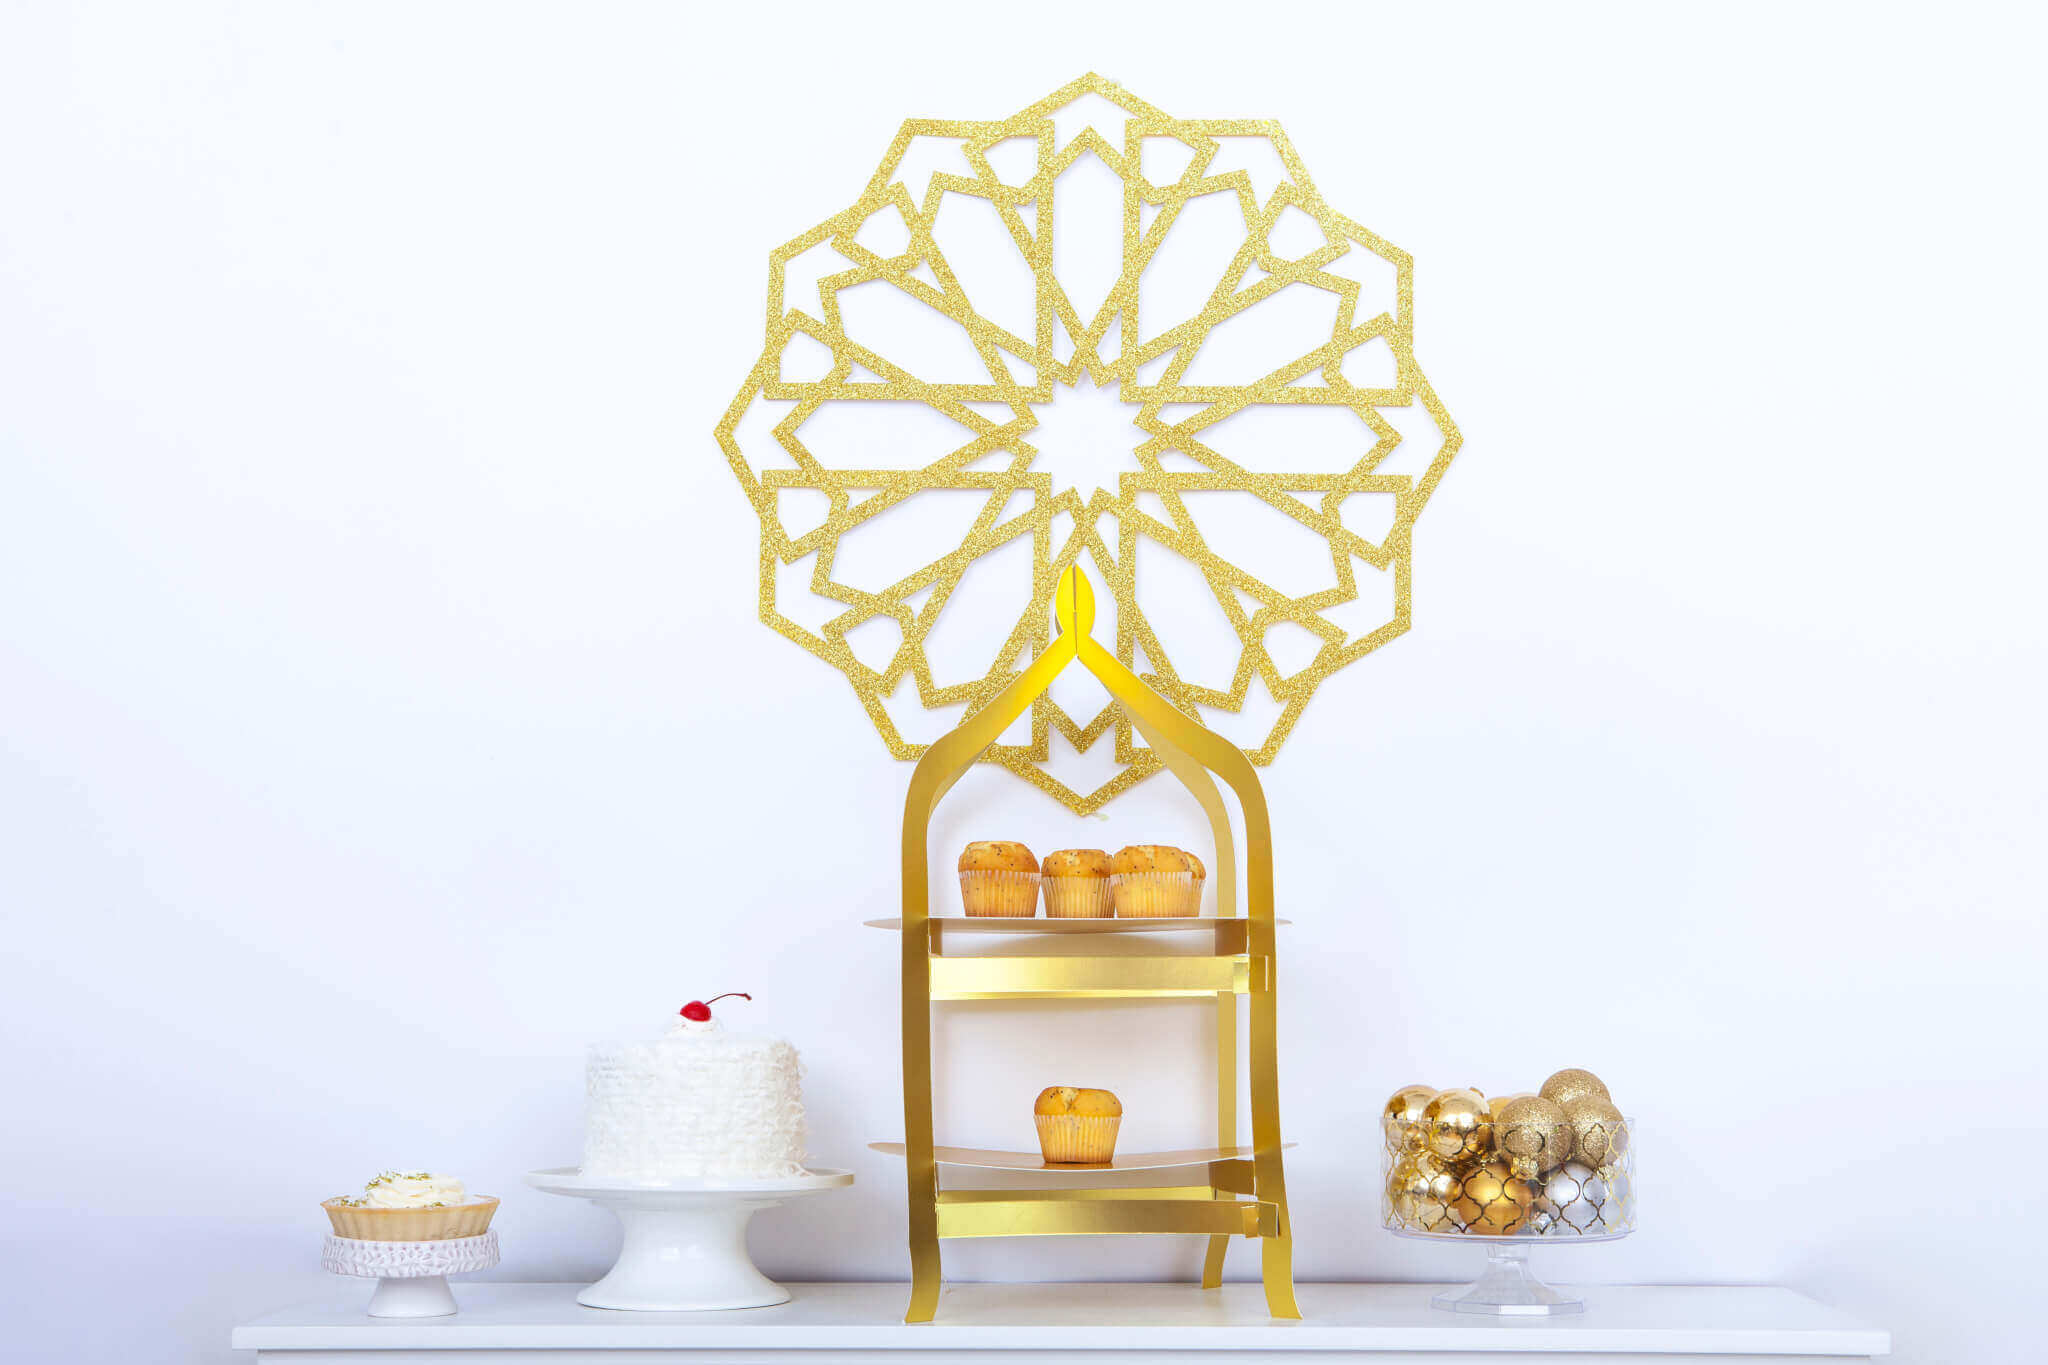 Cake Stand (case of 12)